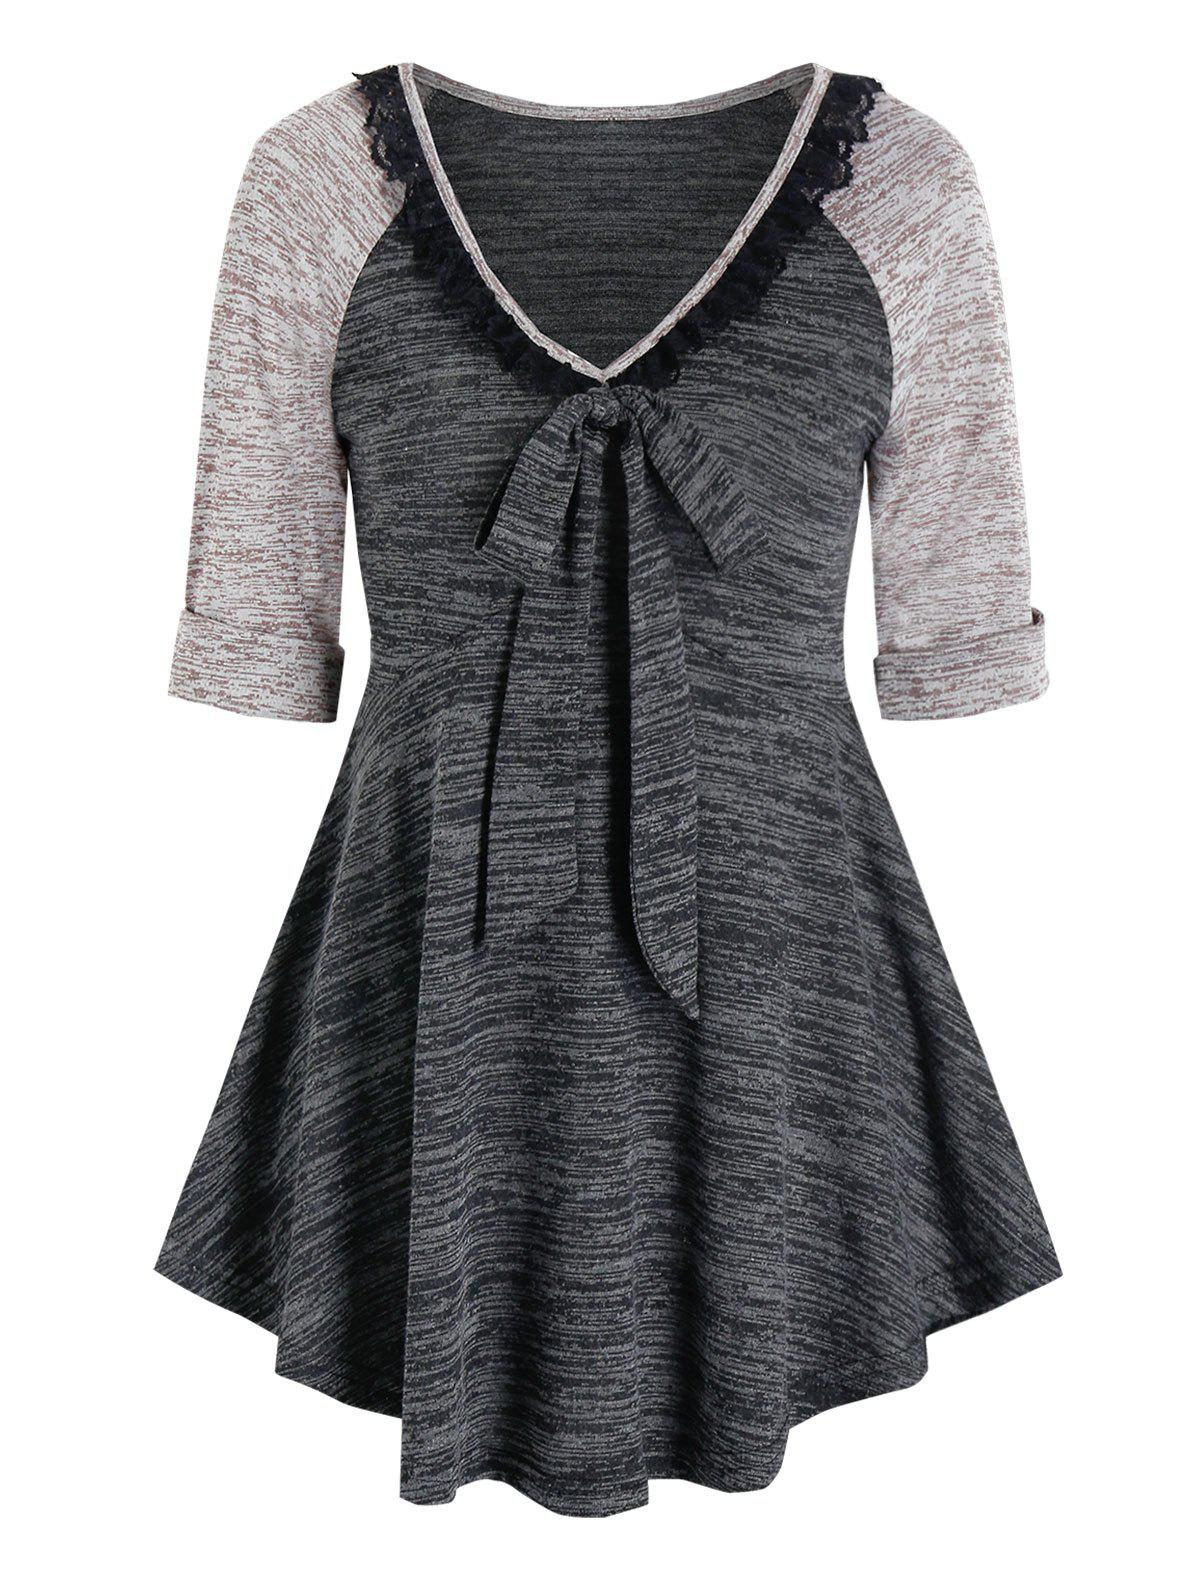 Contrast Space Dye Print Lace Insert Bowknot T-shirt - DARK SLATE GREY L